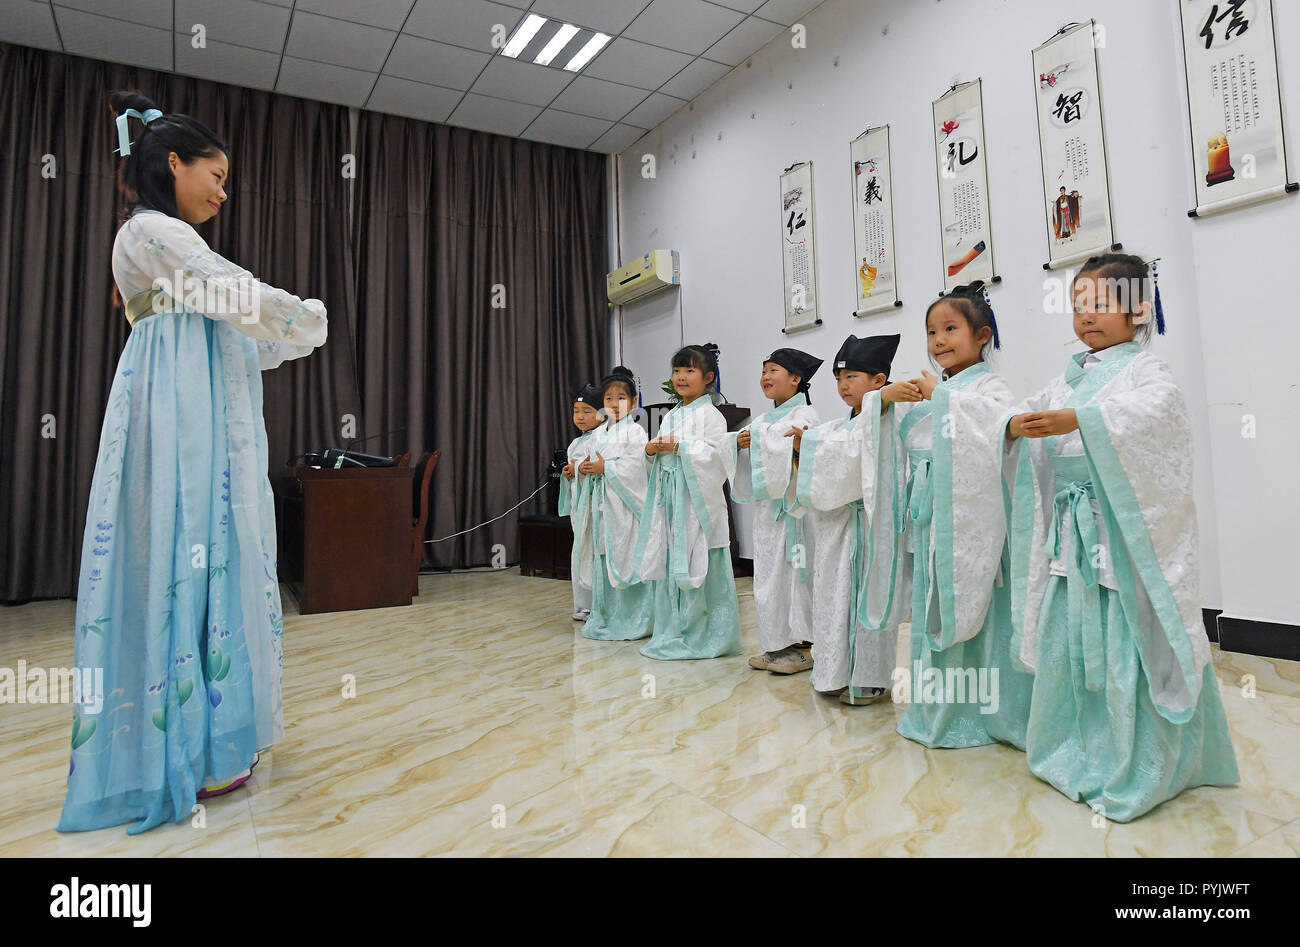 Yingtan, China's Jiangxi Province. 28th Oct, 2018. Students learn traditional etiquette at a community center in Yingtan City, east China's Jiangxi Province, Oct. 28, 2018. The community offers classes on traditional Chinese culture once a week for children as extracurricular activities. Credit: Wan Xiang/Xinhua/Alamy Live News - Stock Image